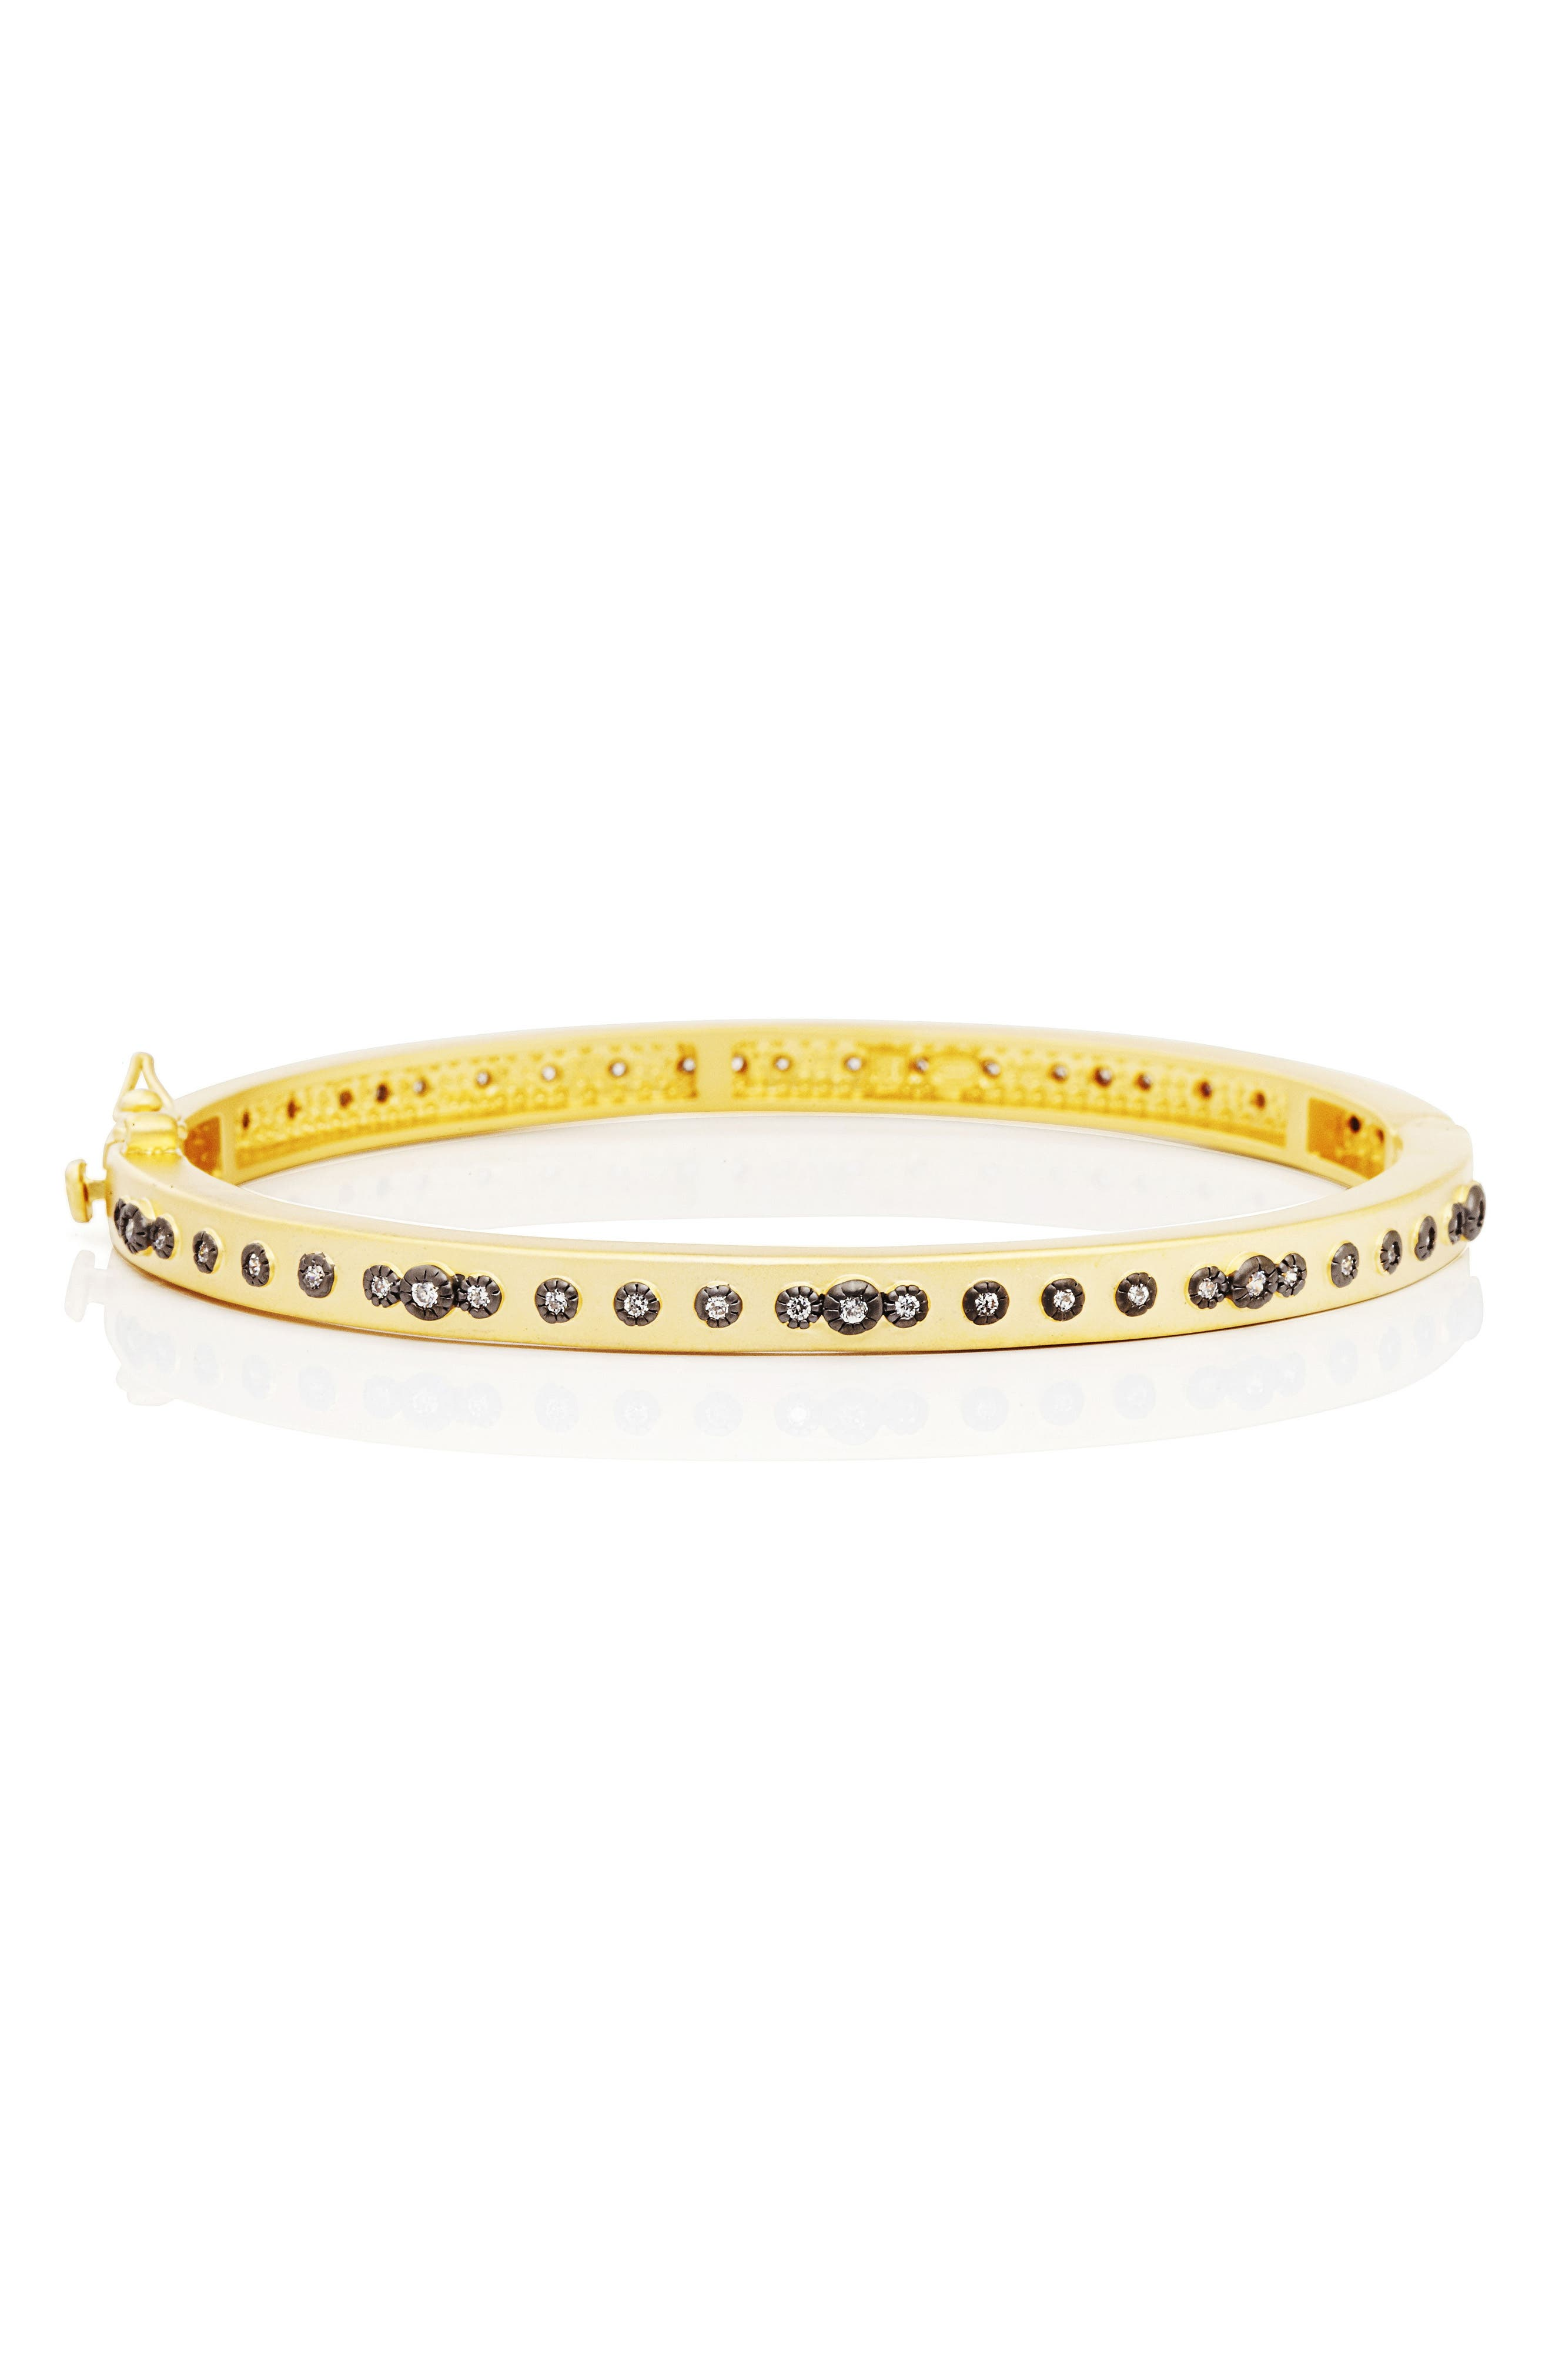 Signature Mini Stud Eternity Bracelet,                             Main thumbnail 1, color,                             Gold/ Black